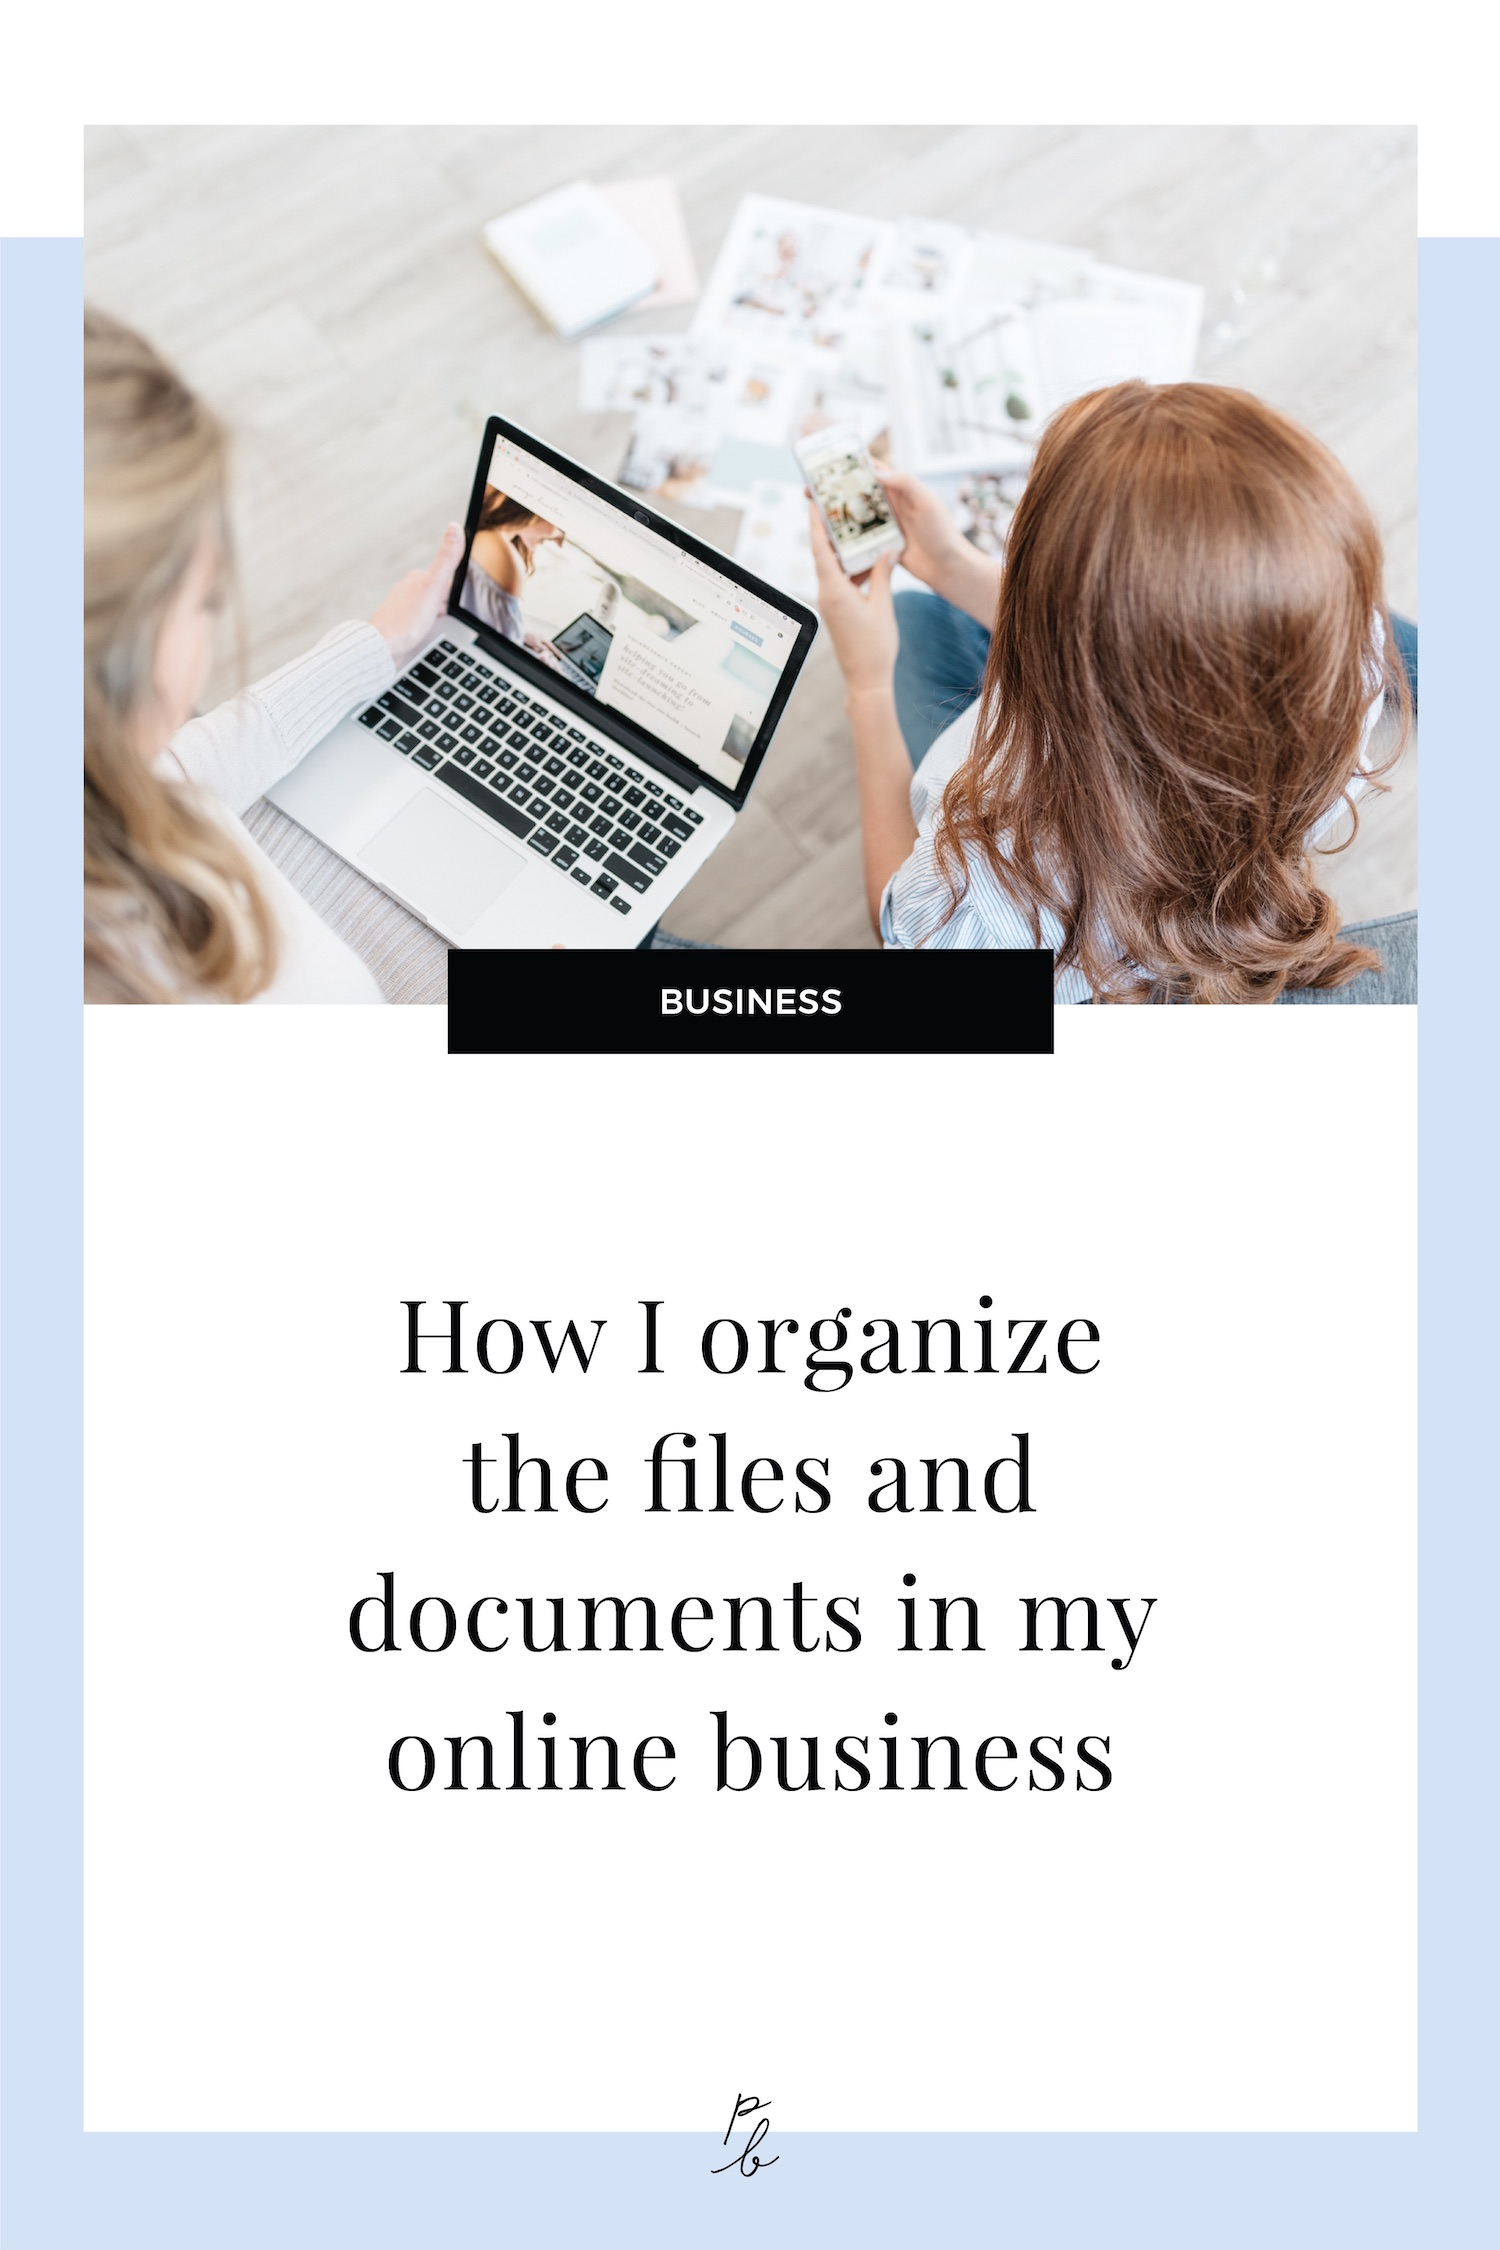 How I organize the files and ocuments in my online business.jpg